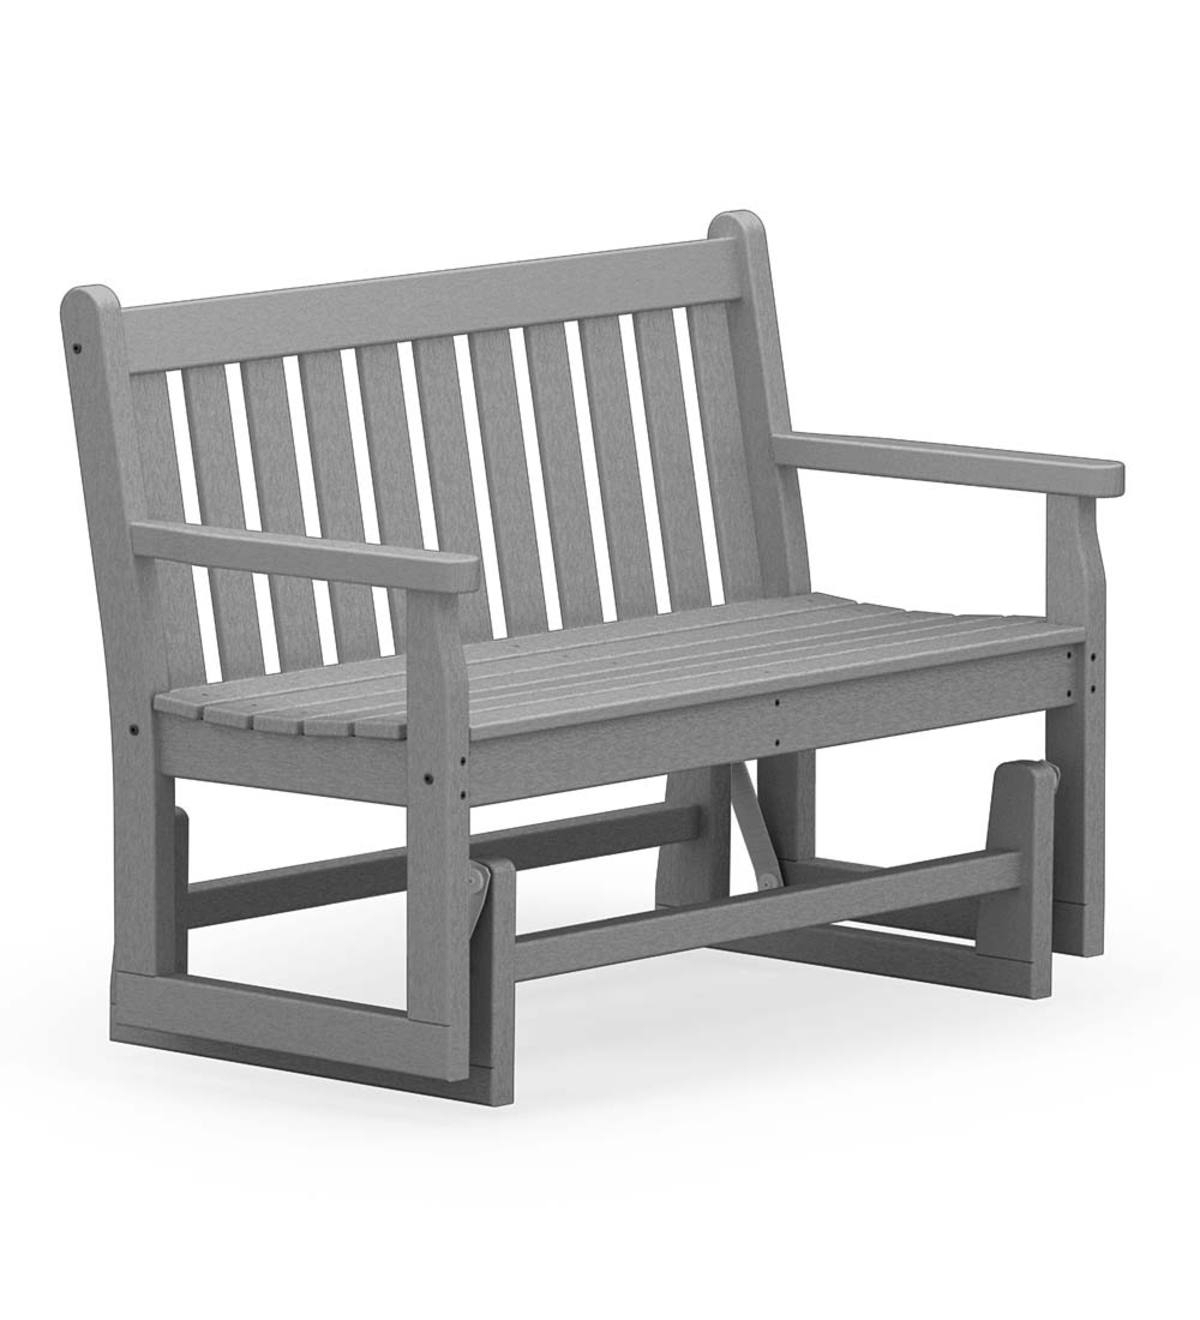 Polywood Outdoor Glider Bench – Gray (View 10 of 30)